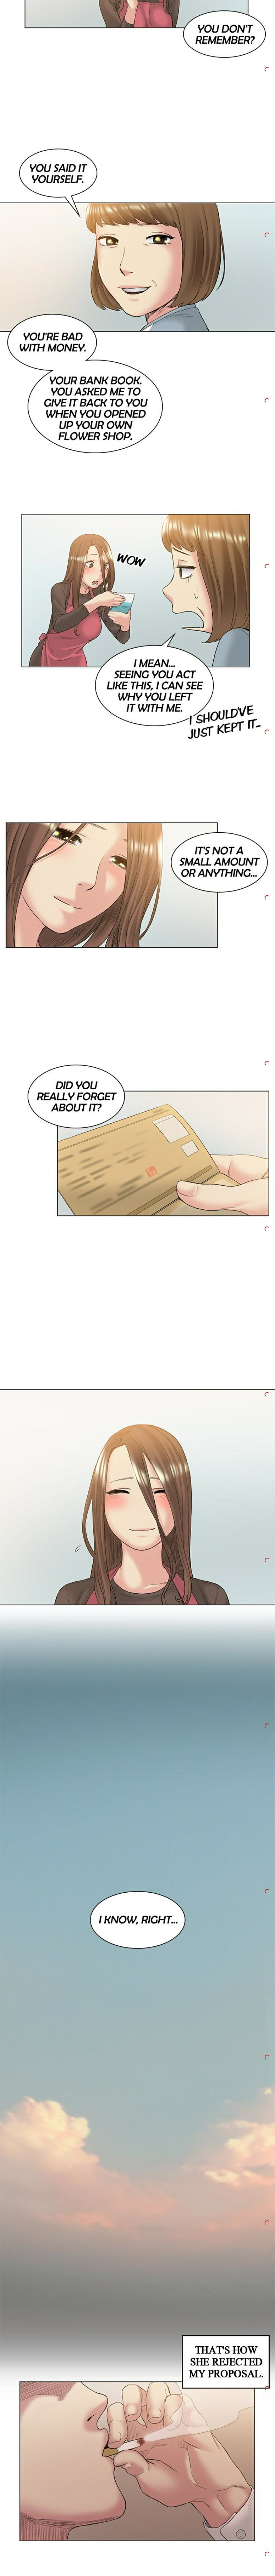 By Chance Chapter 53 - Manhwa18.com